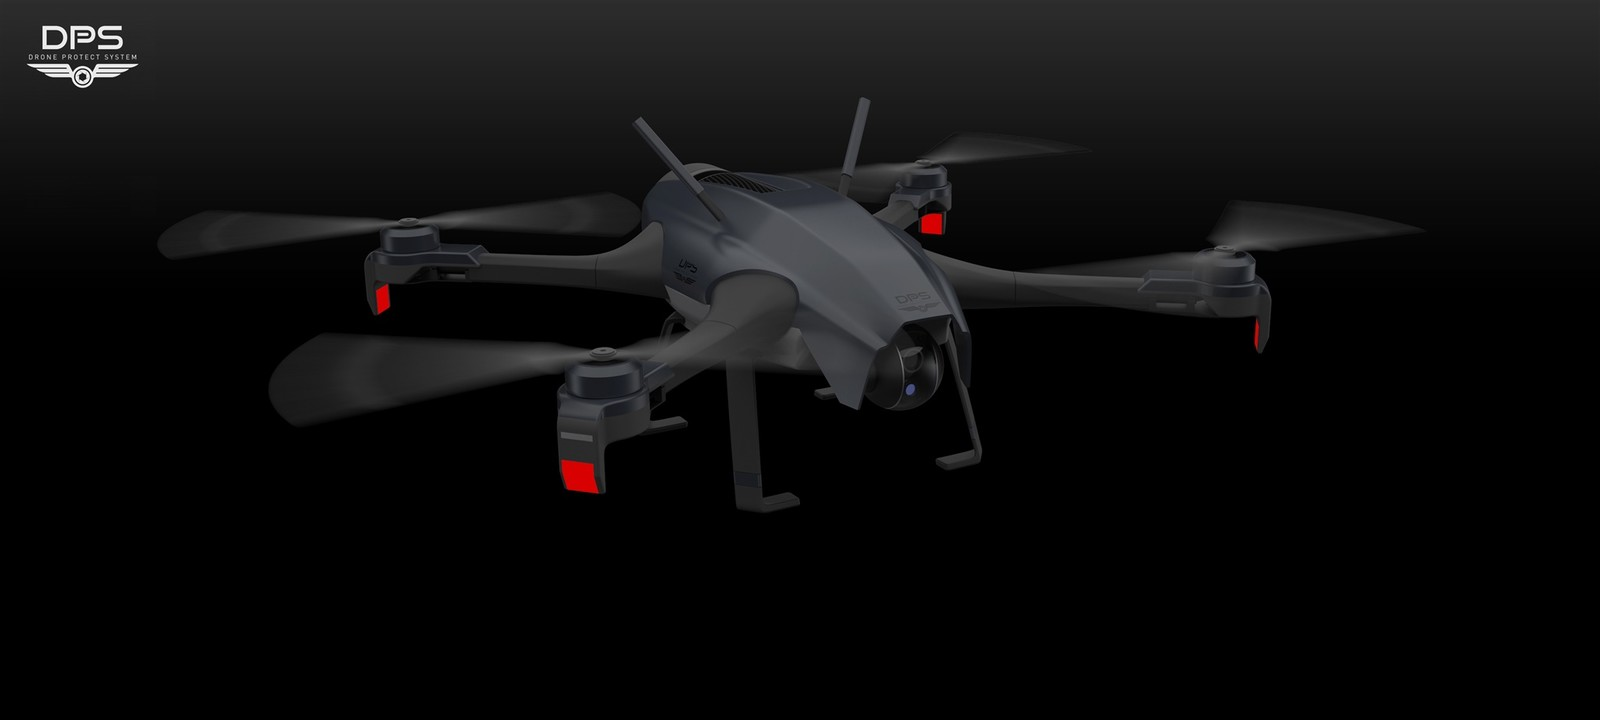 NX Design of DPS Drone